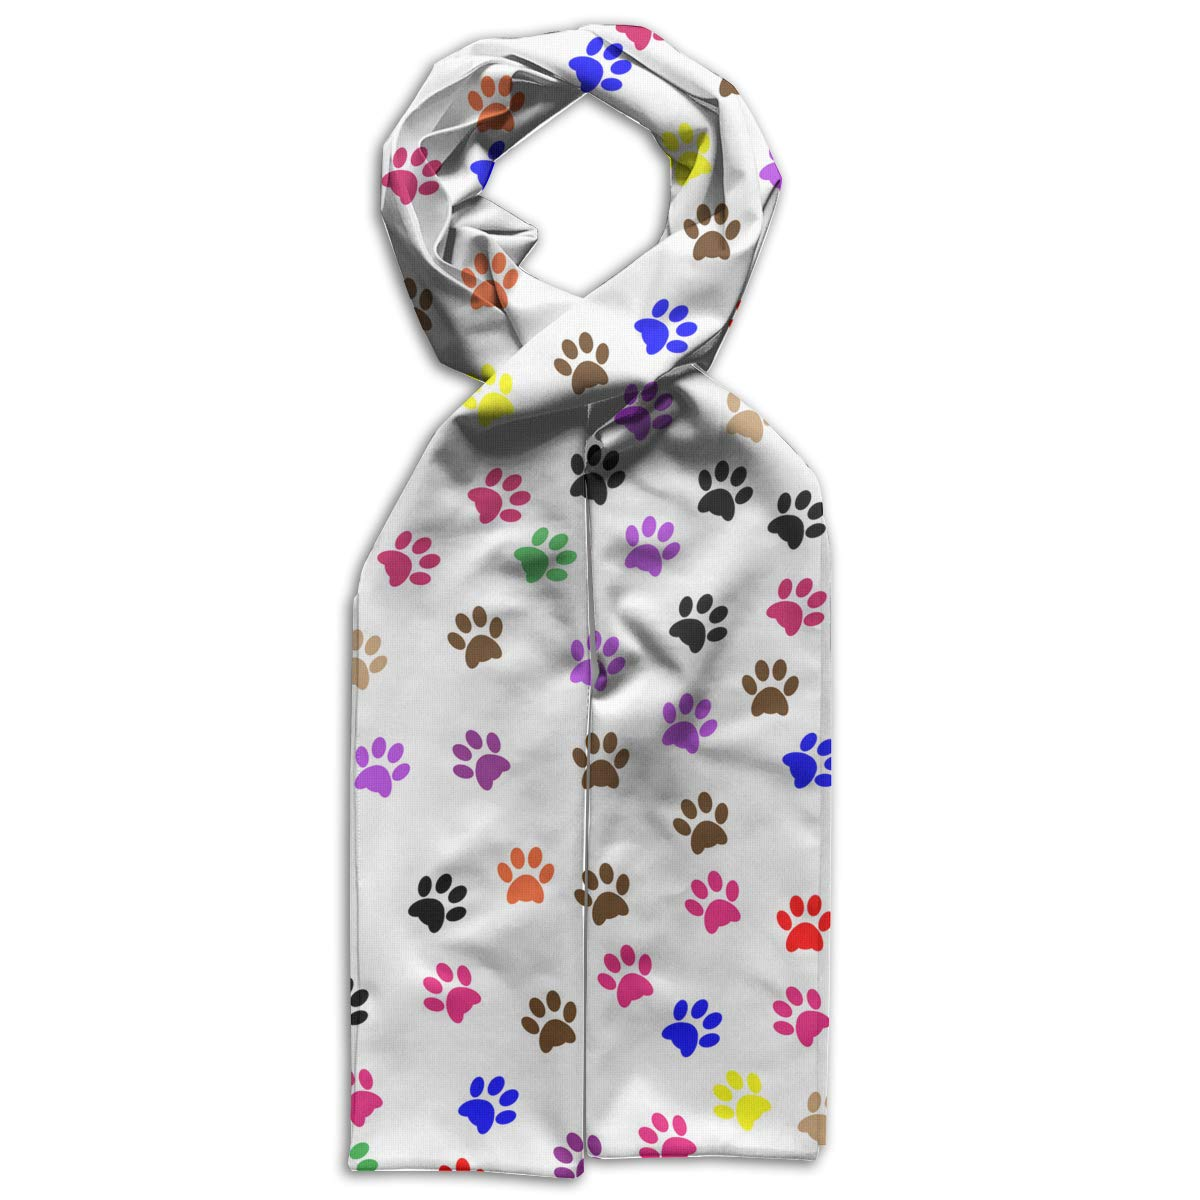 Cute Dog Puppy Paw Prints Kids Printed Scarf Soft Winter Infinity Scarf Warmer Travel Scarf For Kids Perfect Birthday Gift